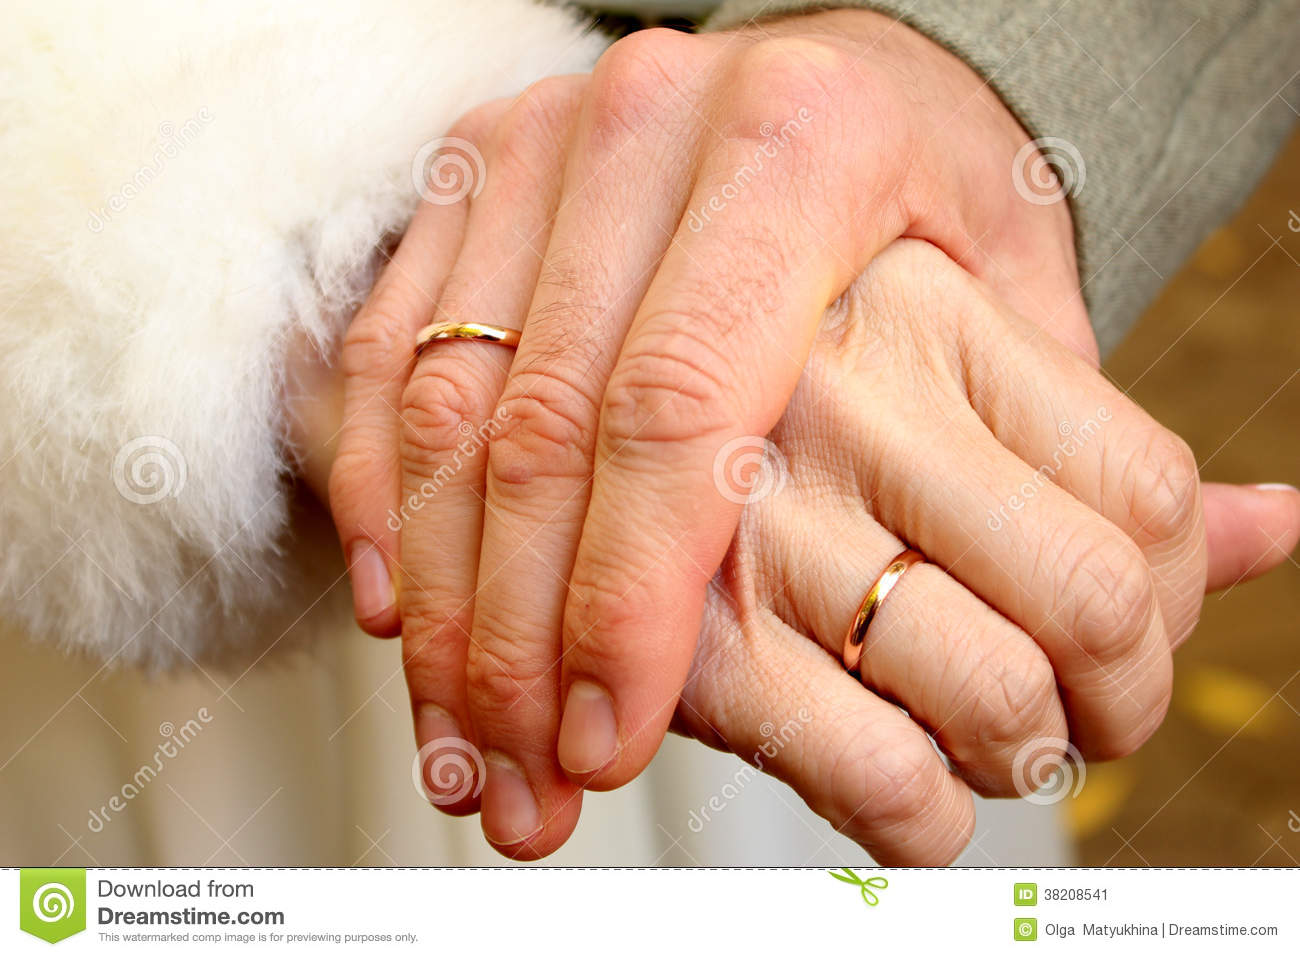 Male And Female Hands With Wedding Rings Stock Image Image of gray